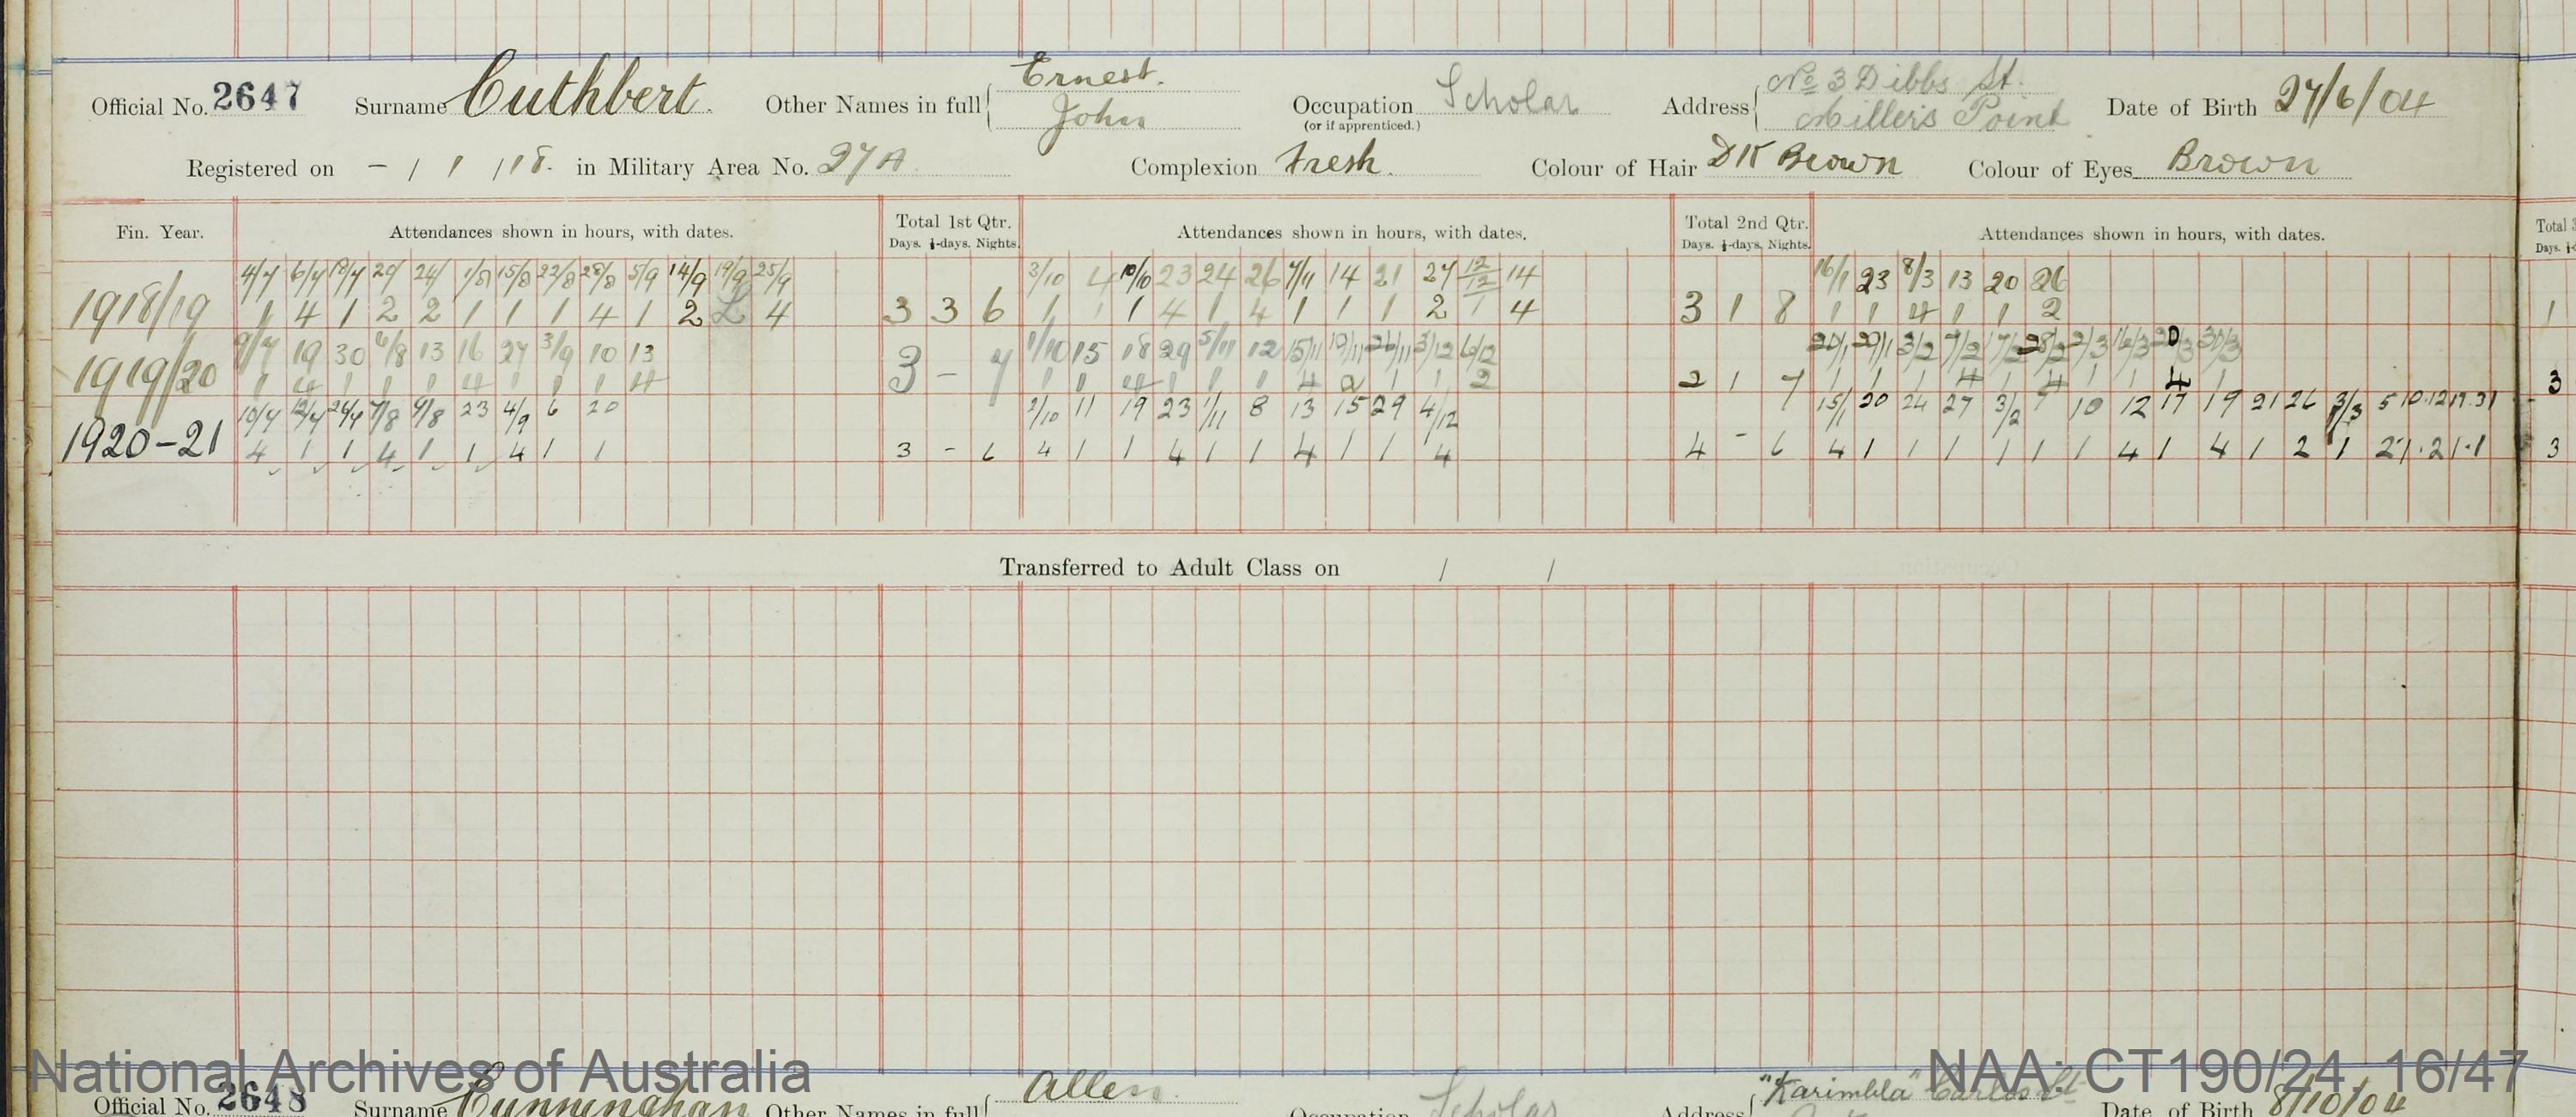 SURNAME - CUTHBERT;  GIVEN NAME(S) - Ernest John;  OFFICIAL NUMBER - 2647;  DATE OF BIRTH - 27 June 1904;  PLACE OF BIRTH - [Unknown];  NEXT OF KIN - [Unknown];  SERVICE/STATION - Sydney NSW;  REGISTRATION DATE - January 1918